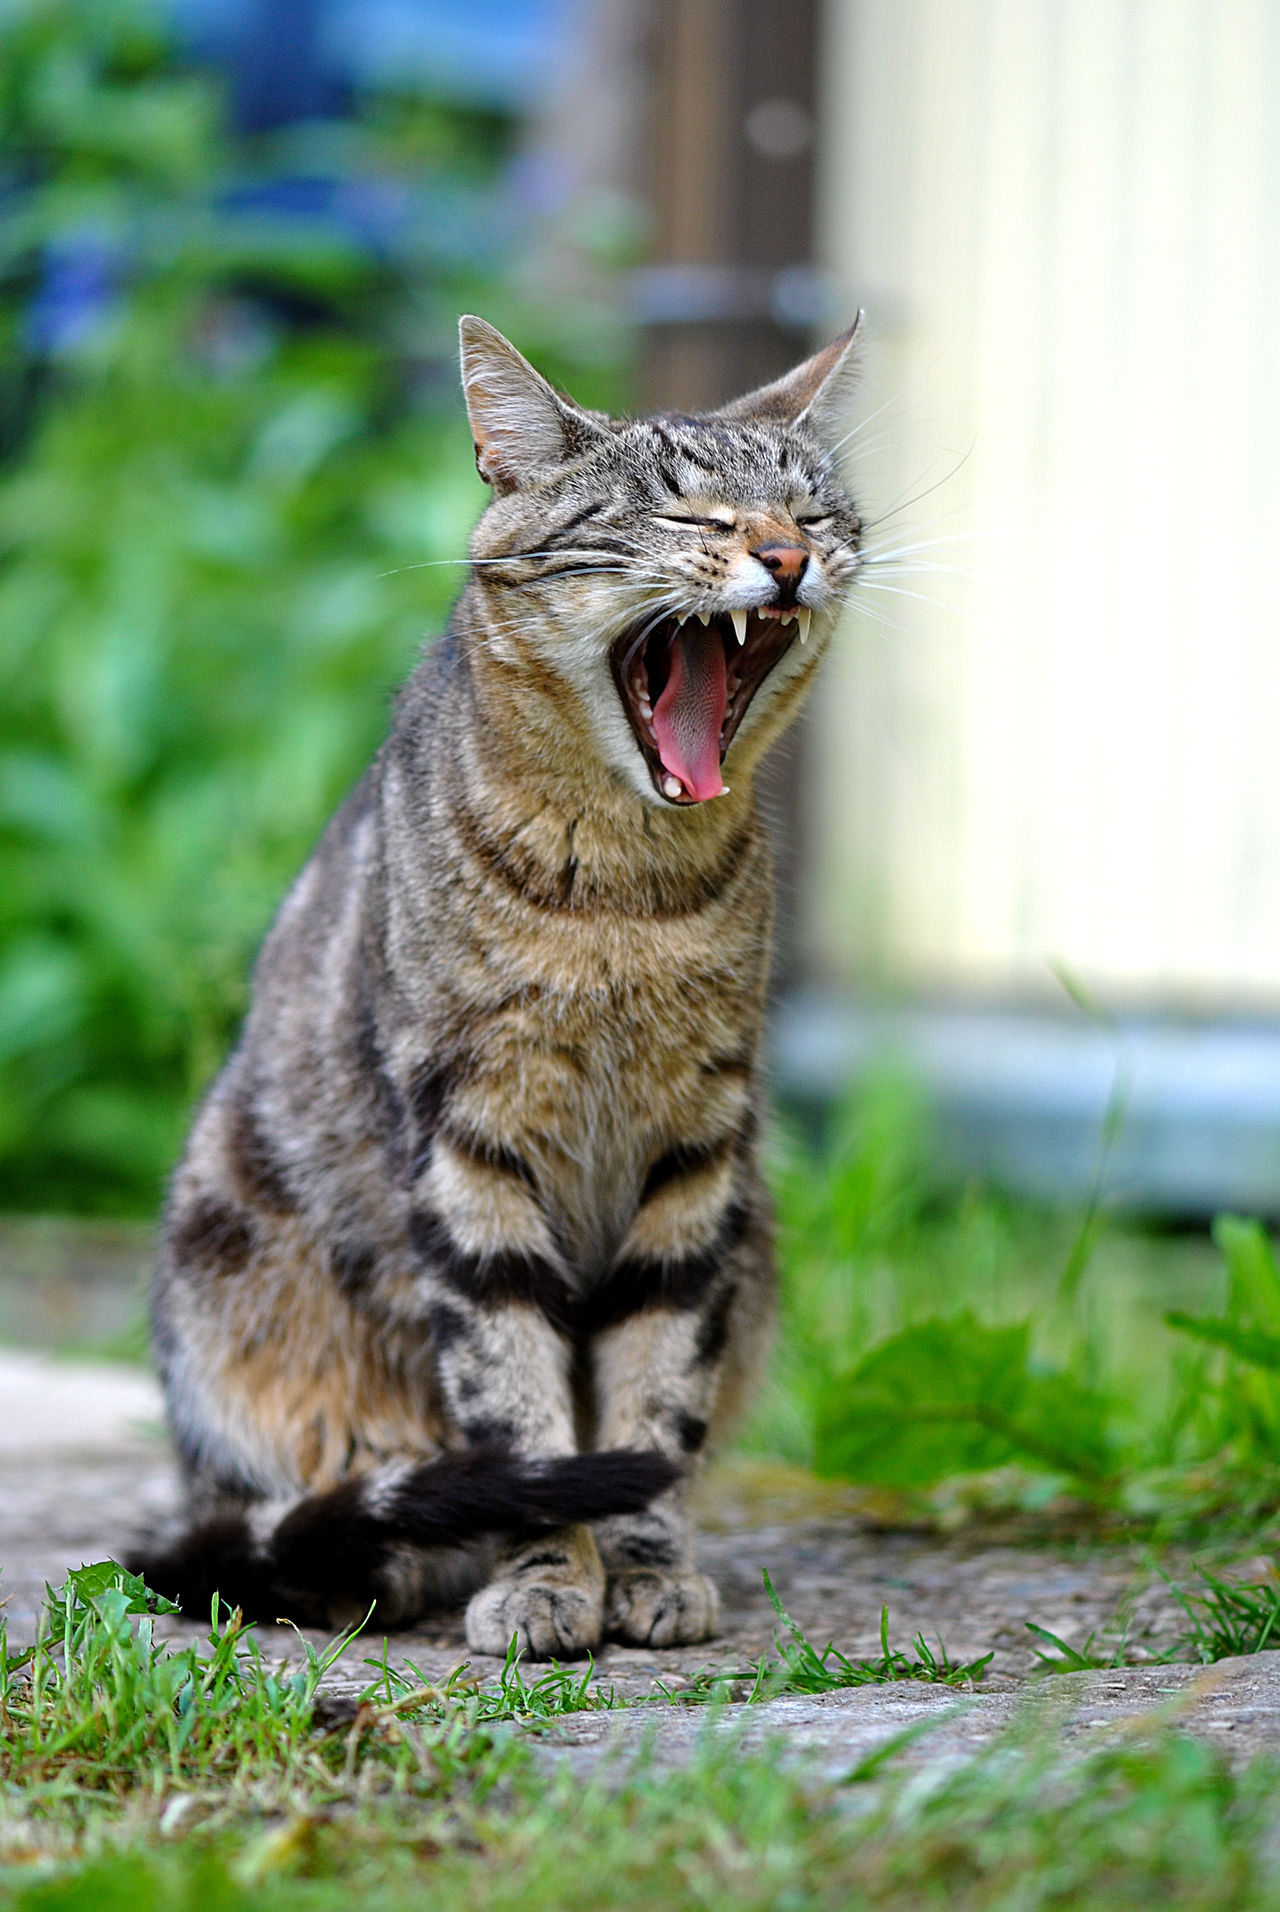 Animal Animal Themes Cat Cats Cats Of EyeEm Cute Cat Cute Cats Day Domestic Animals Domestic Cat EyeEmNewHere Feline Grass Latvia Mammal Mouth Open No People One Animal Outdoors Pets Tabby Cat The Baltics The Best Cat Yawning